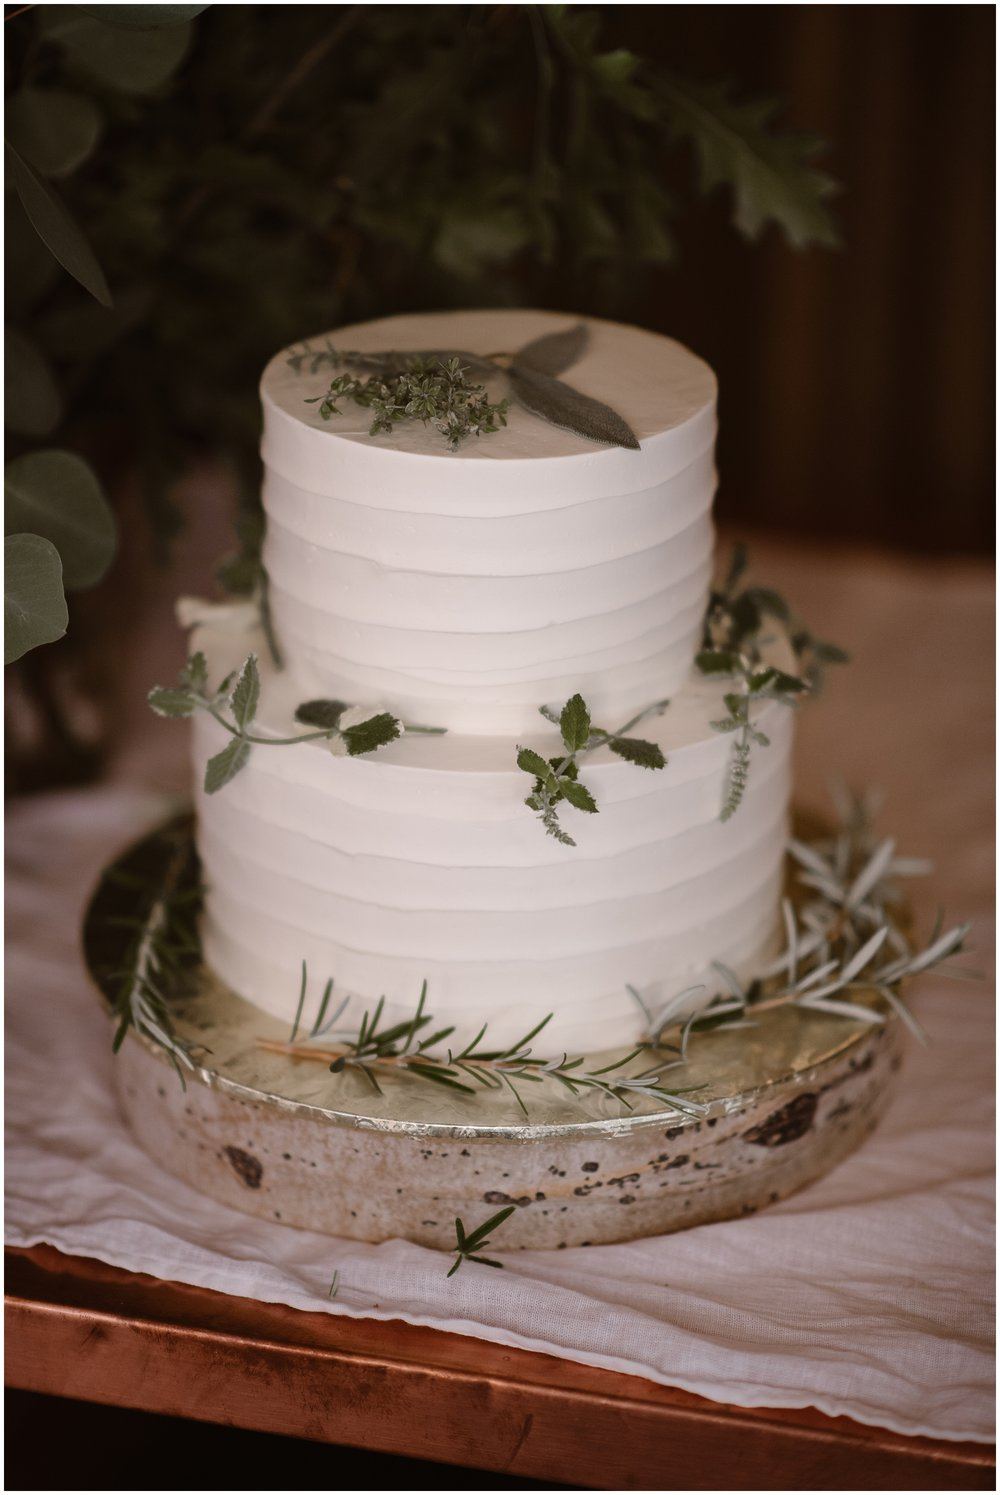 A white, meticulously frosted cake, layered with green sprigs of foliage, sits on a shiny cake plate in the Portland restaurant during the party after eloping. This was one of Lauryn and David's unquie eloping ideas they wanted to implement in their small simple wedding.